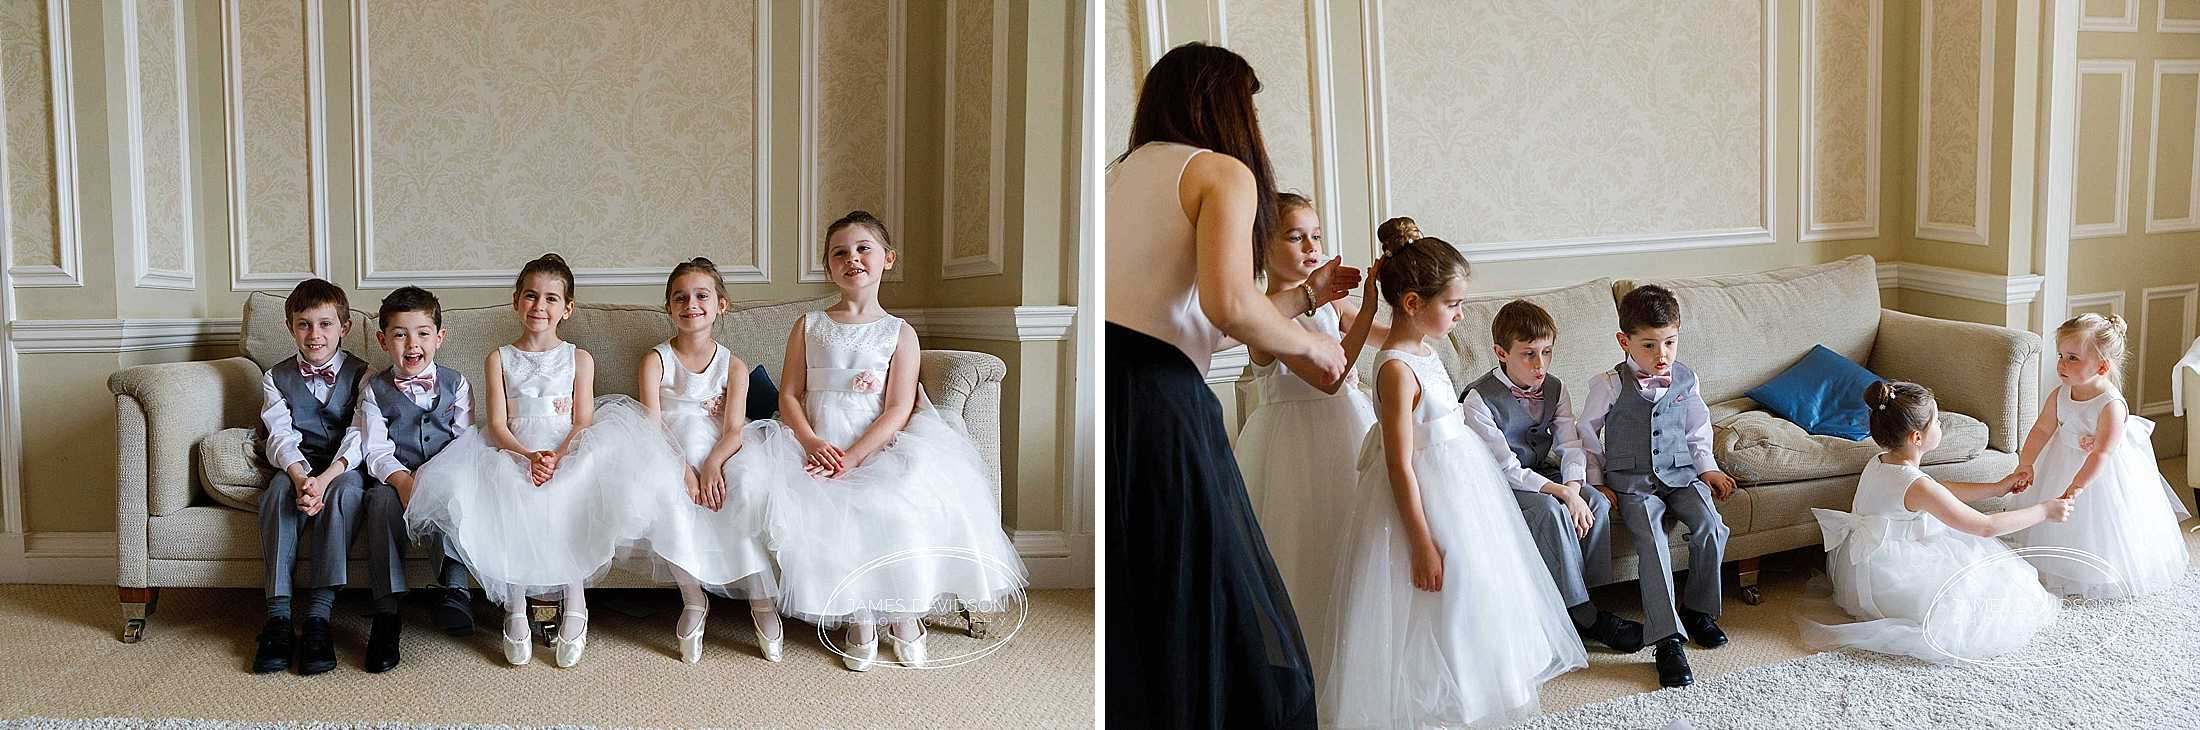 hedsor-house-wedding-photographer-033